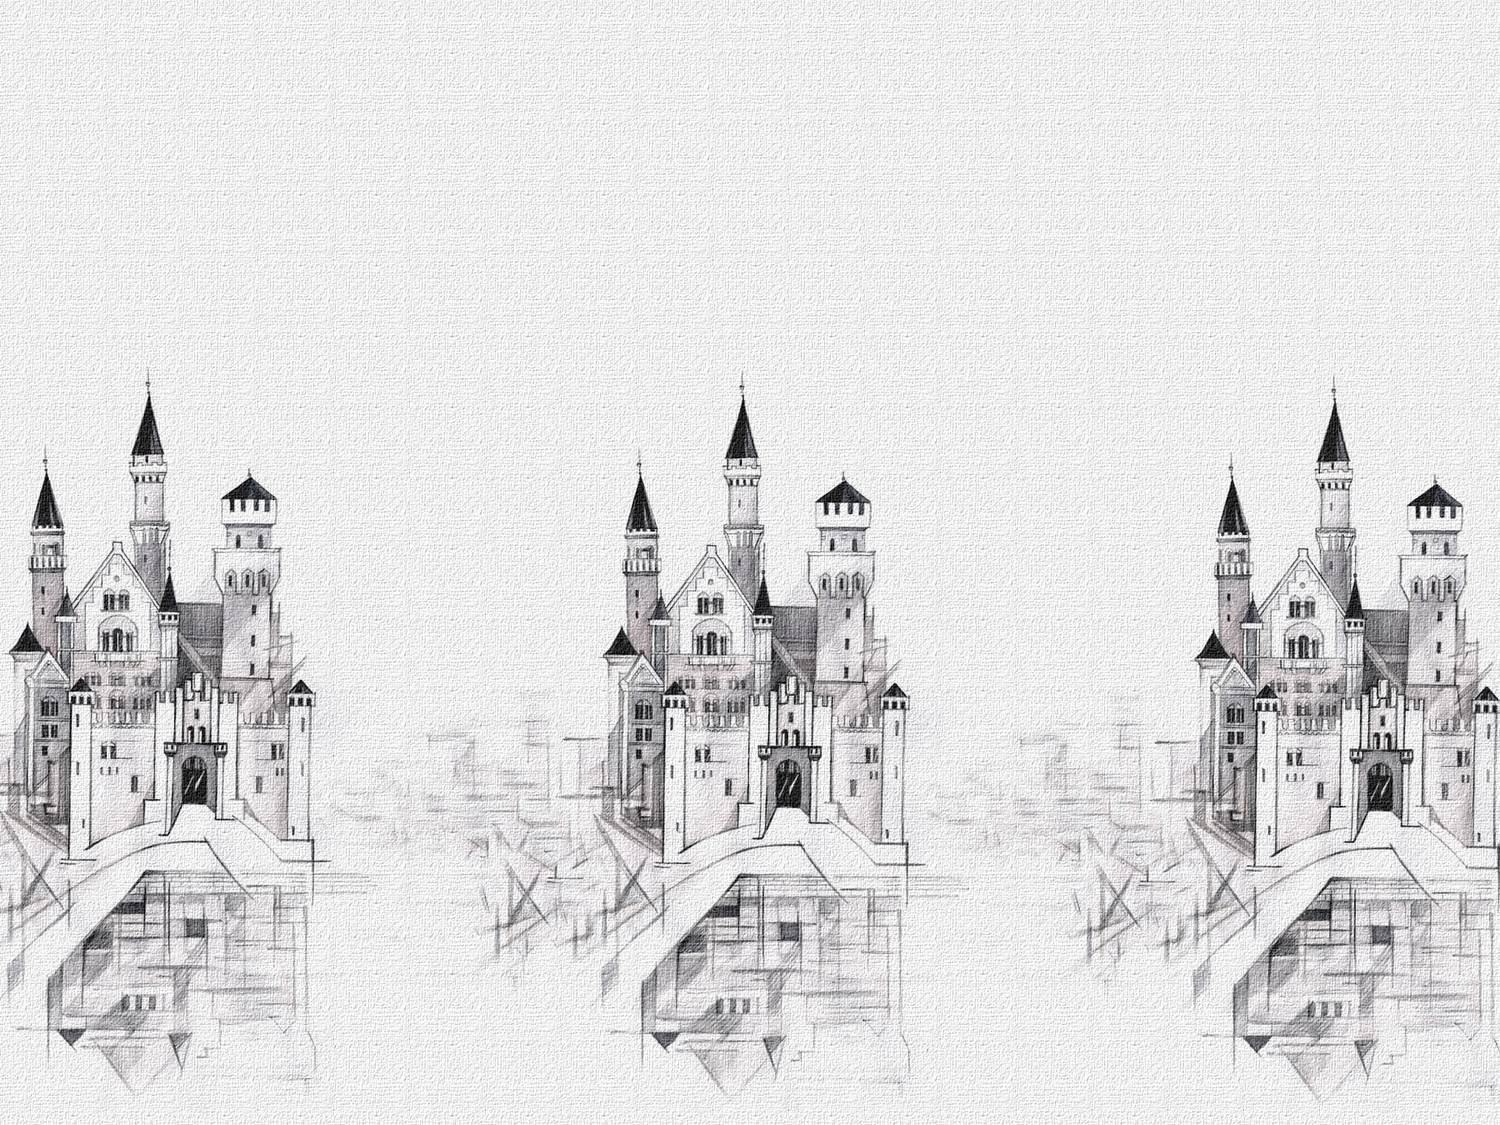 142/61 Castle/Black Коллекция: Colourfull Collection